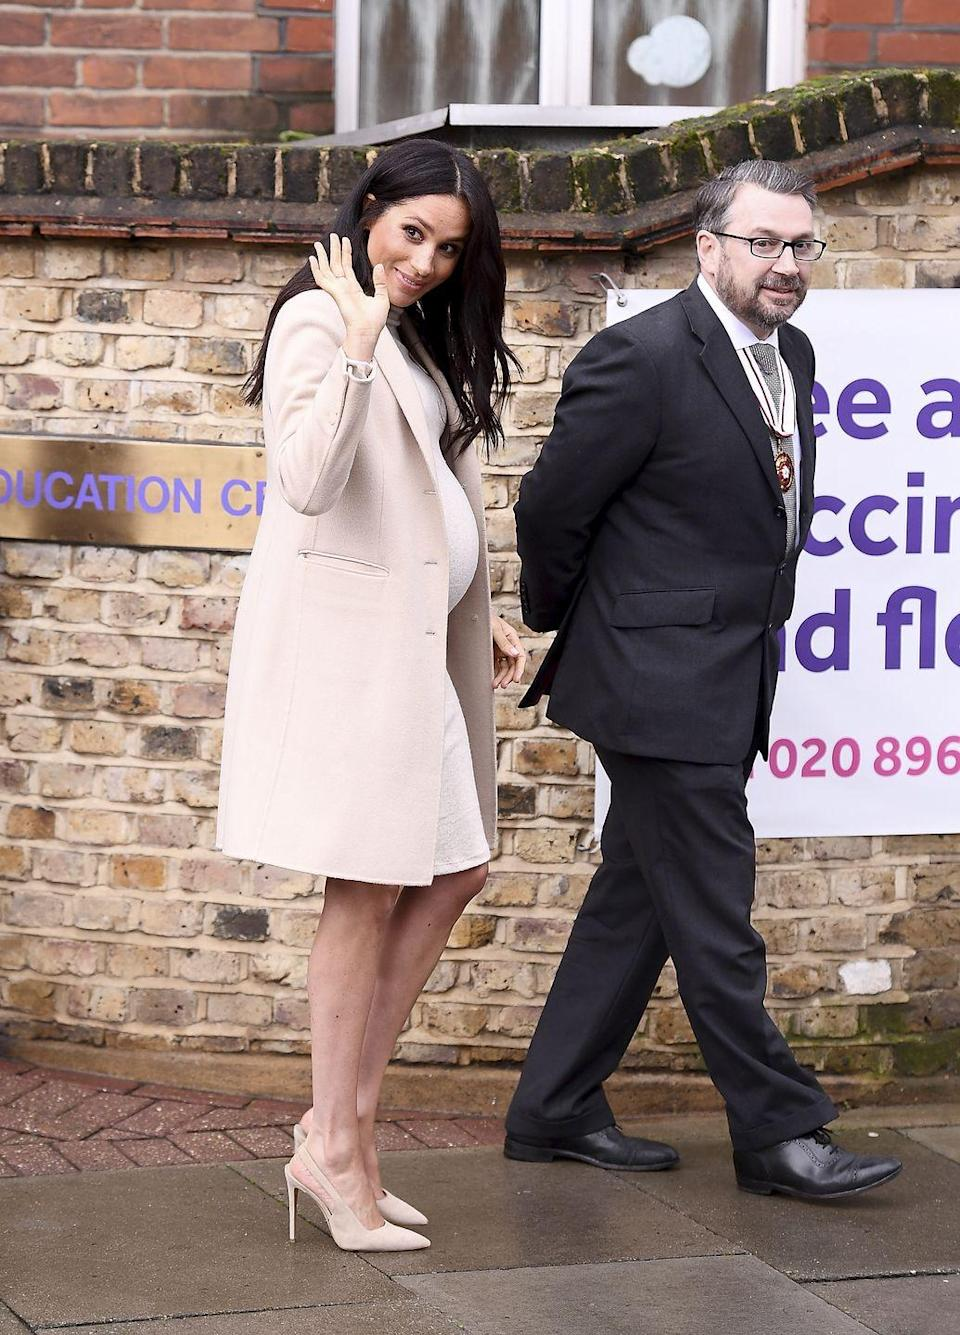 "<p>Meghan visited Mayhew, a grass-roots animal charity, and one of her new royal patronages, in London <a href=""https://www.townandcountrymag.com/style/fashion-trends/a25906832/meghan-markle-mayhew-cream-hm-dress-photos/"" rel=""nofollow noopener"" target=""_blank"" data-ylk=""slk:wearing an affordable cream-colored"" class=""link rapid-noclick-resp"">wearing an affordable cream-colored</a> maternity <a href=""https://www2.hm.com/en_us/productpage.0669953003.html?"" rel=""nofollow noopener"" target=""_blank"" data-ylk=""slk:dress from H&M"" class=""link rapid-noclick-resp"">dress from H&M</a> with a cashmere Armani coat and nude heels.</p><p><a class=""link rapid-noclick-resp"" href=""https://go.redirectingat.com?id=74968X1596630&url=https%3A%2F%2Fwww2.hm.com%2Fen_us%2Fproductpage.0669953003.html&sref=https%3A%2F%2Fwww.townandcountrymag.com%2Fstyle%2Ffashion-trends%2Fg3272%2Fmeghan-markle-preppy-style%2F"" rel=""nofollow noopener"" target=""_blank"" data-ylk=""slk:SHOP NOW"">SHOP NOW</a> <em>H&M Mama Fine-Knit Dress, $34.99</em></p>"